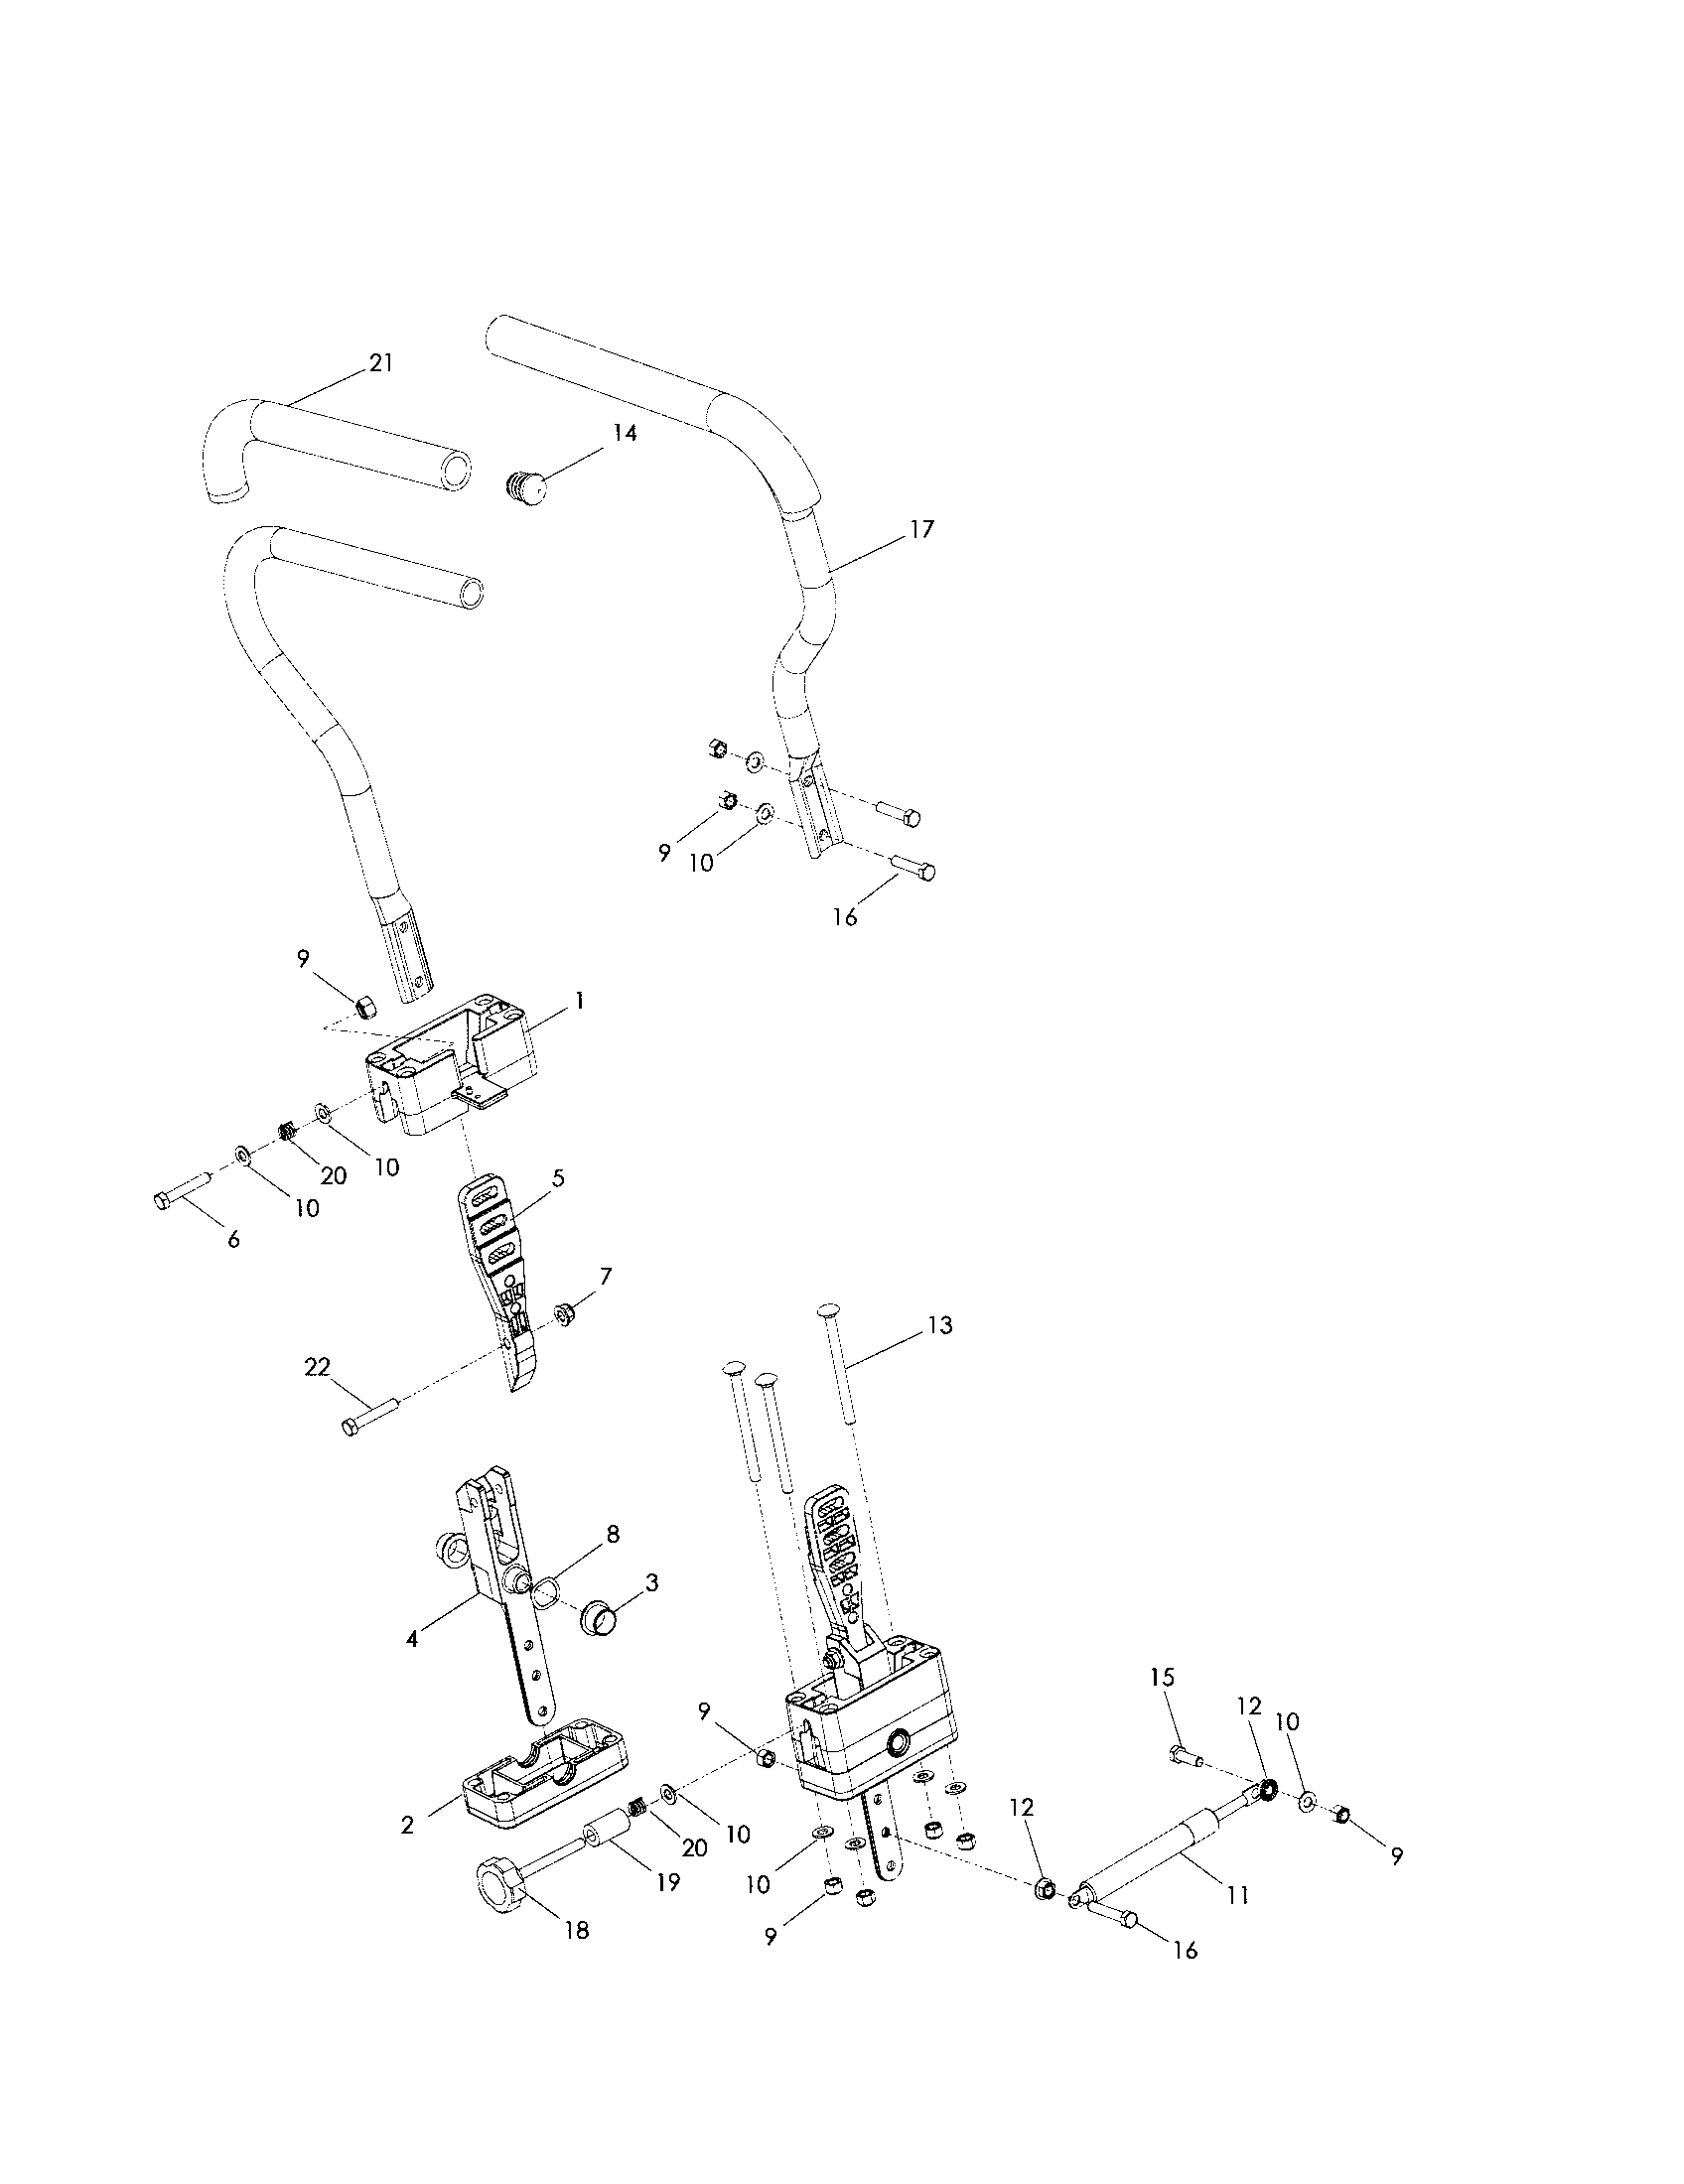 STEERING Diagram & Parts List for Model RZ5424 Husqvarna